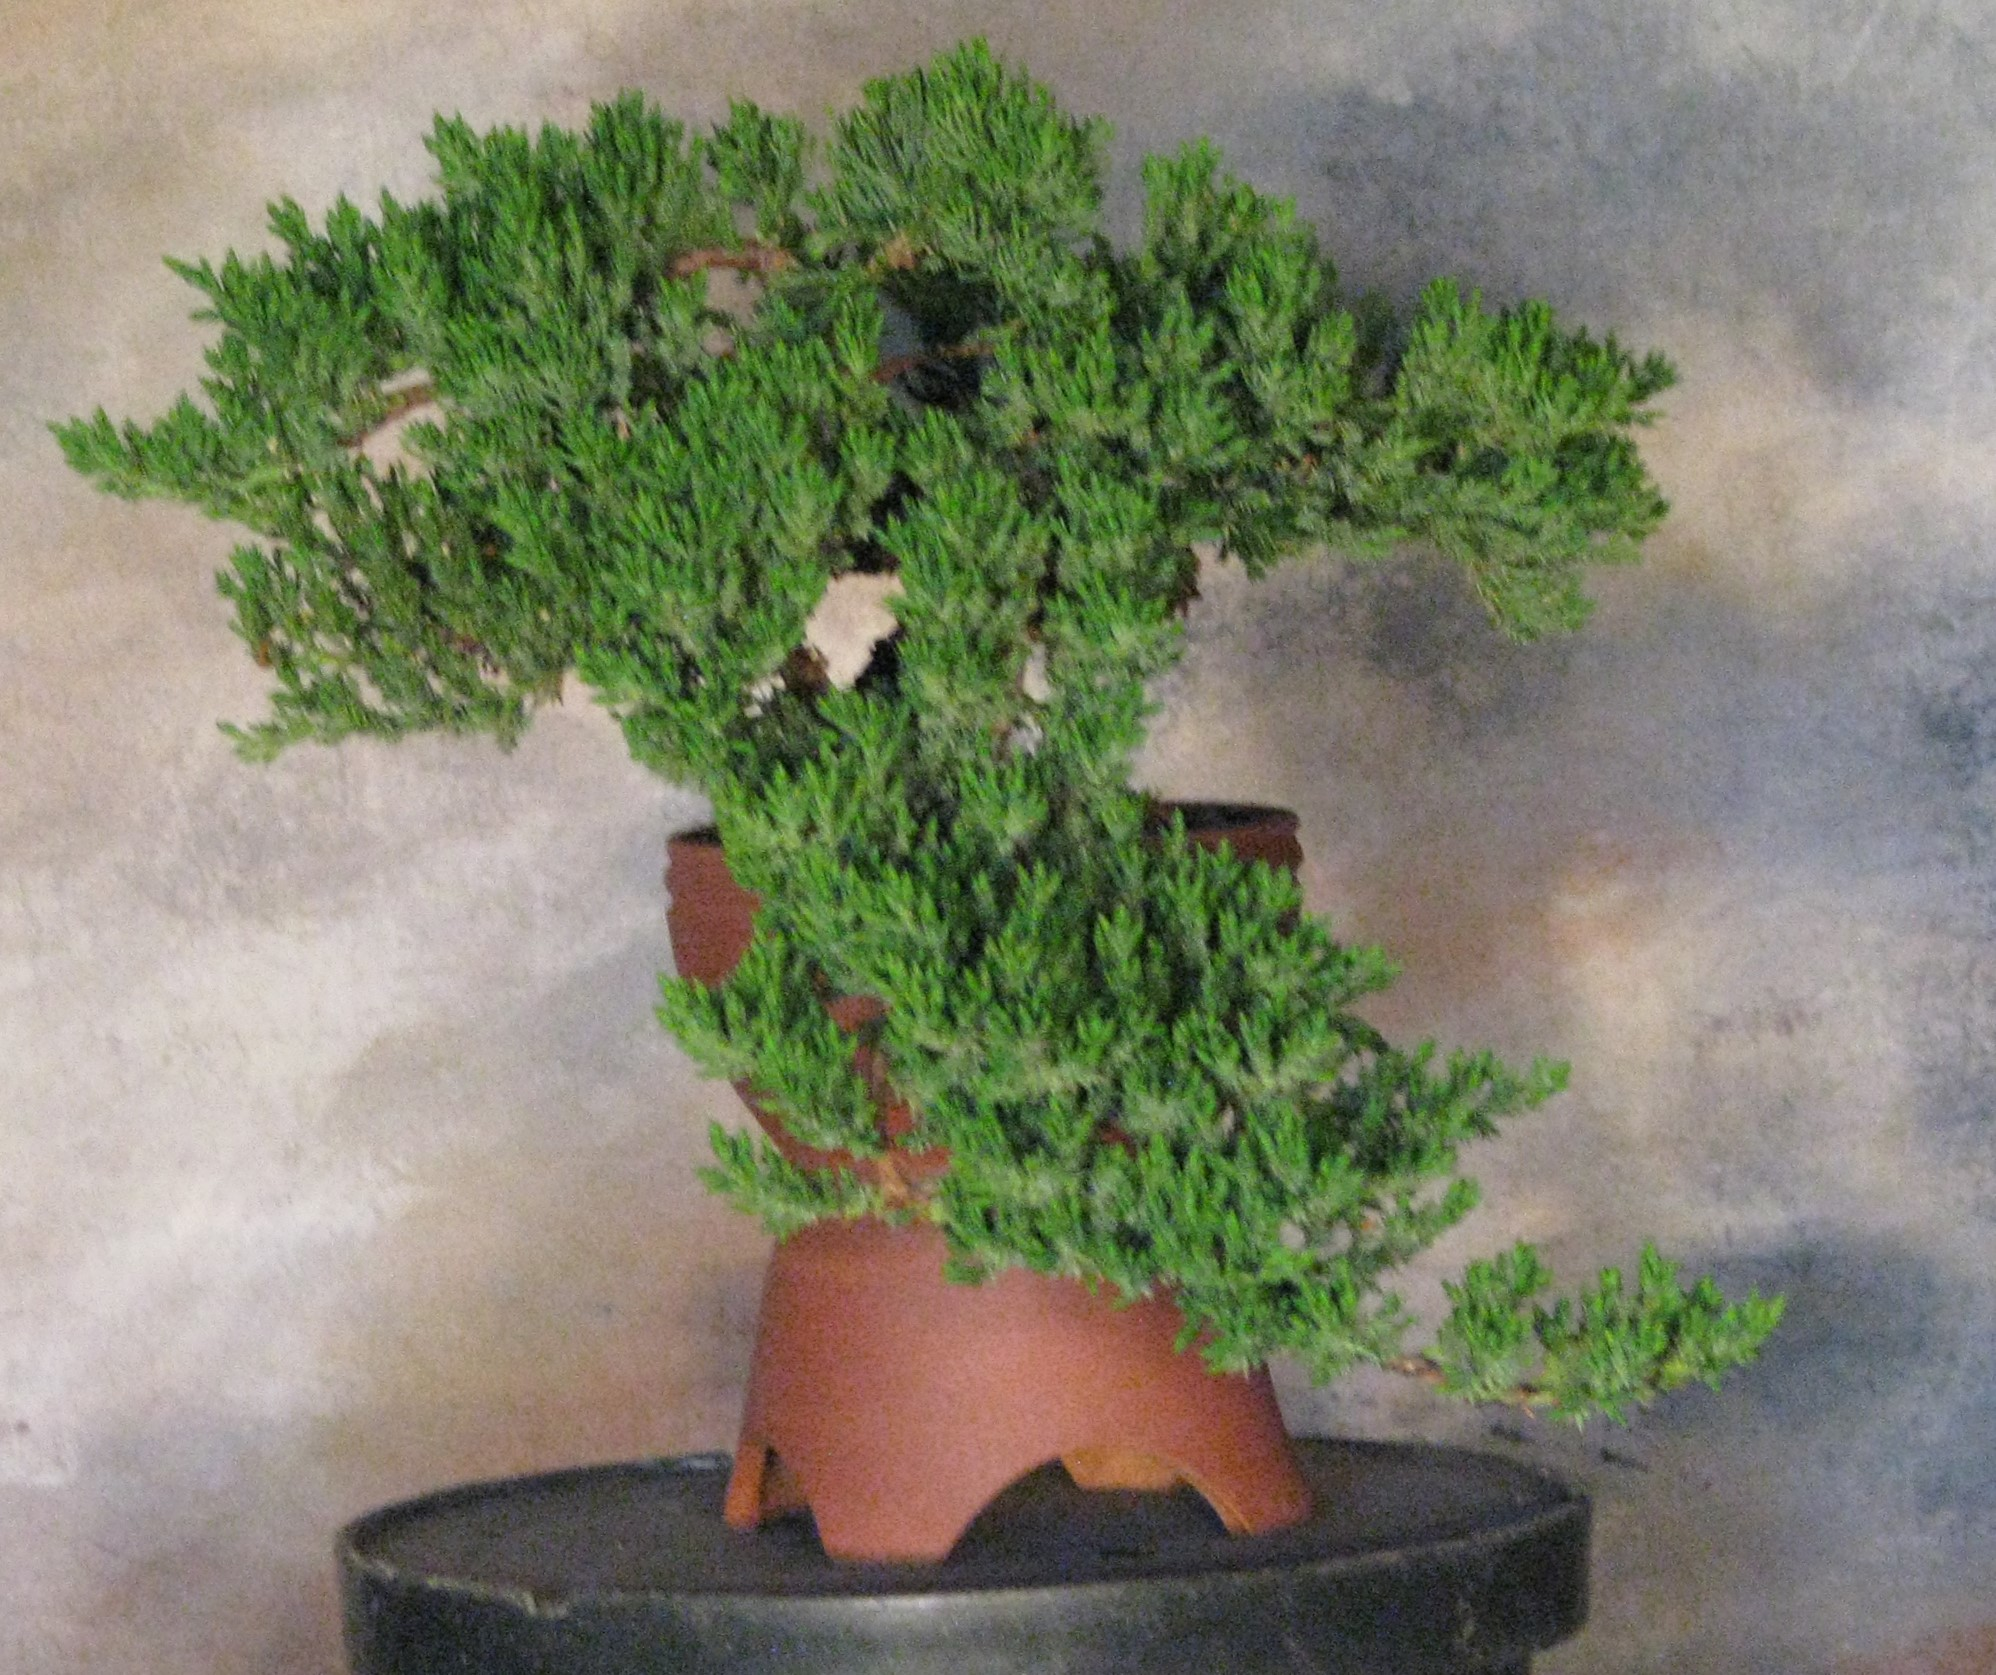 Procumbens Nana Bonsai 1 Colorado Rocky Mountain Bonsai Suiseki